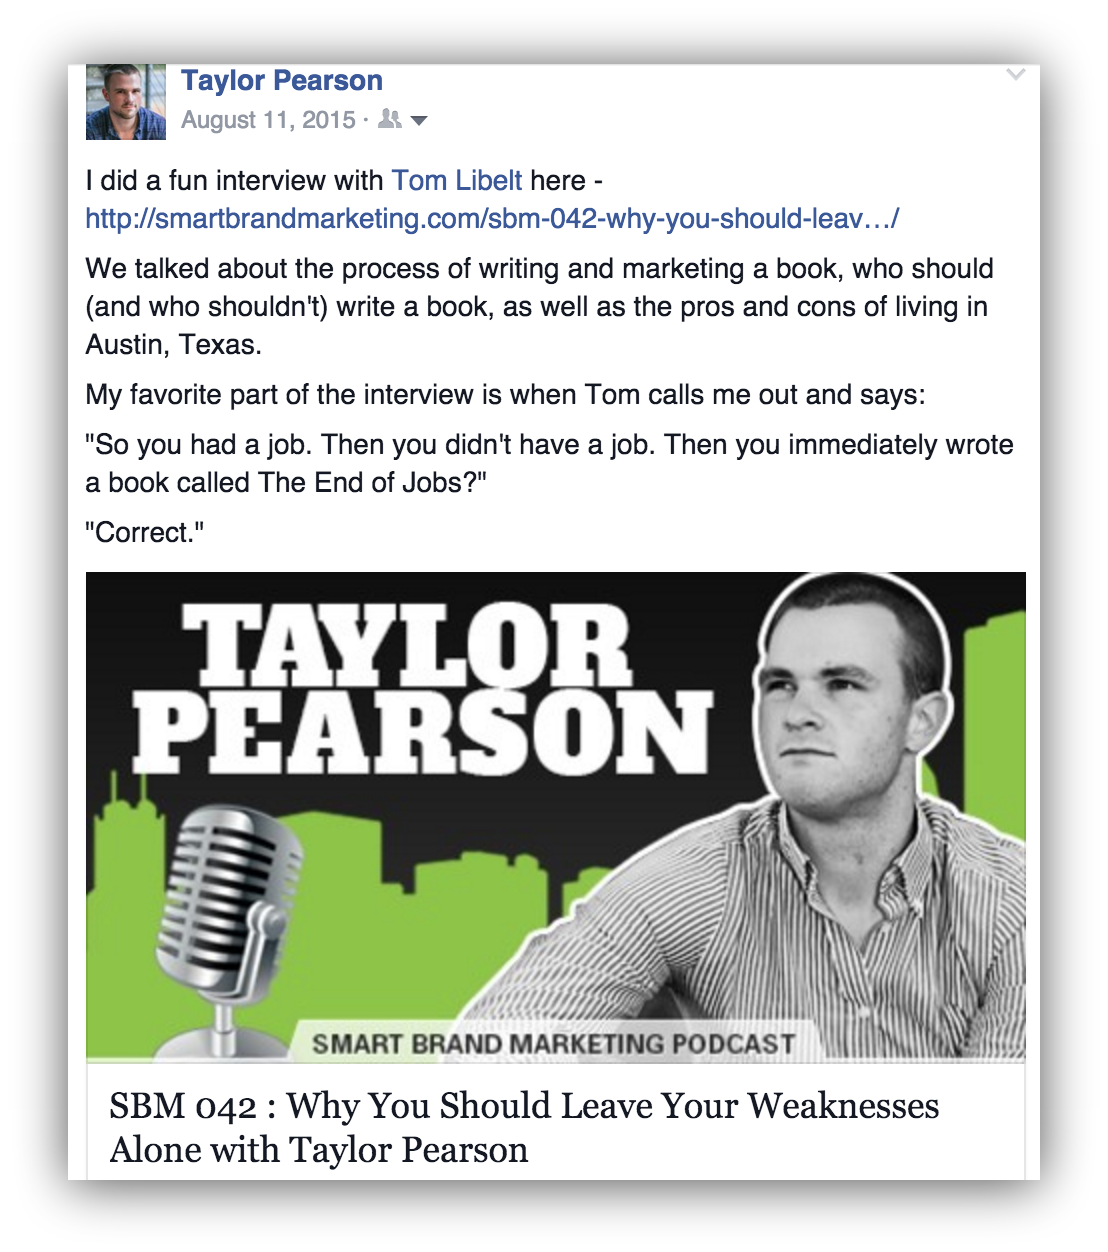 Screenshot of a facebook post promoting a podcast about an interview with taylor pearson